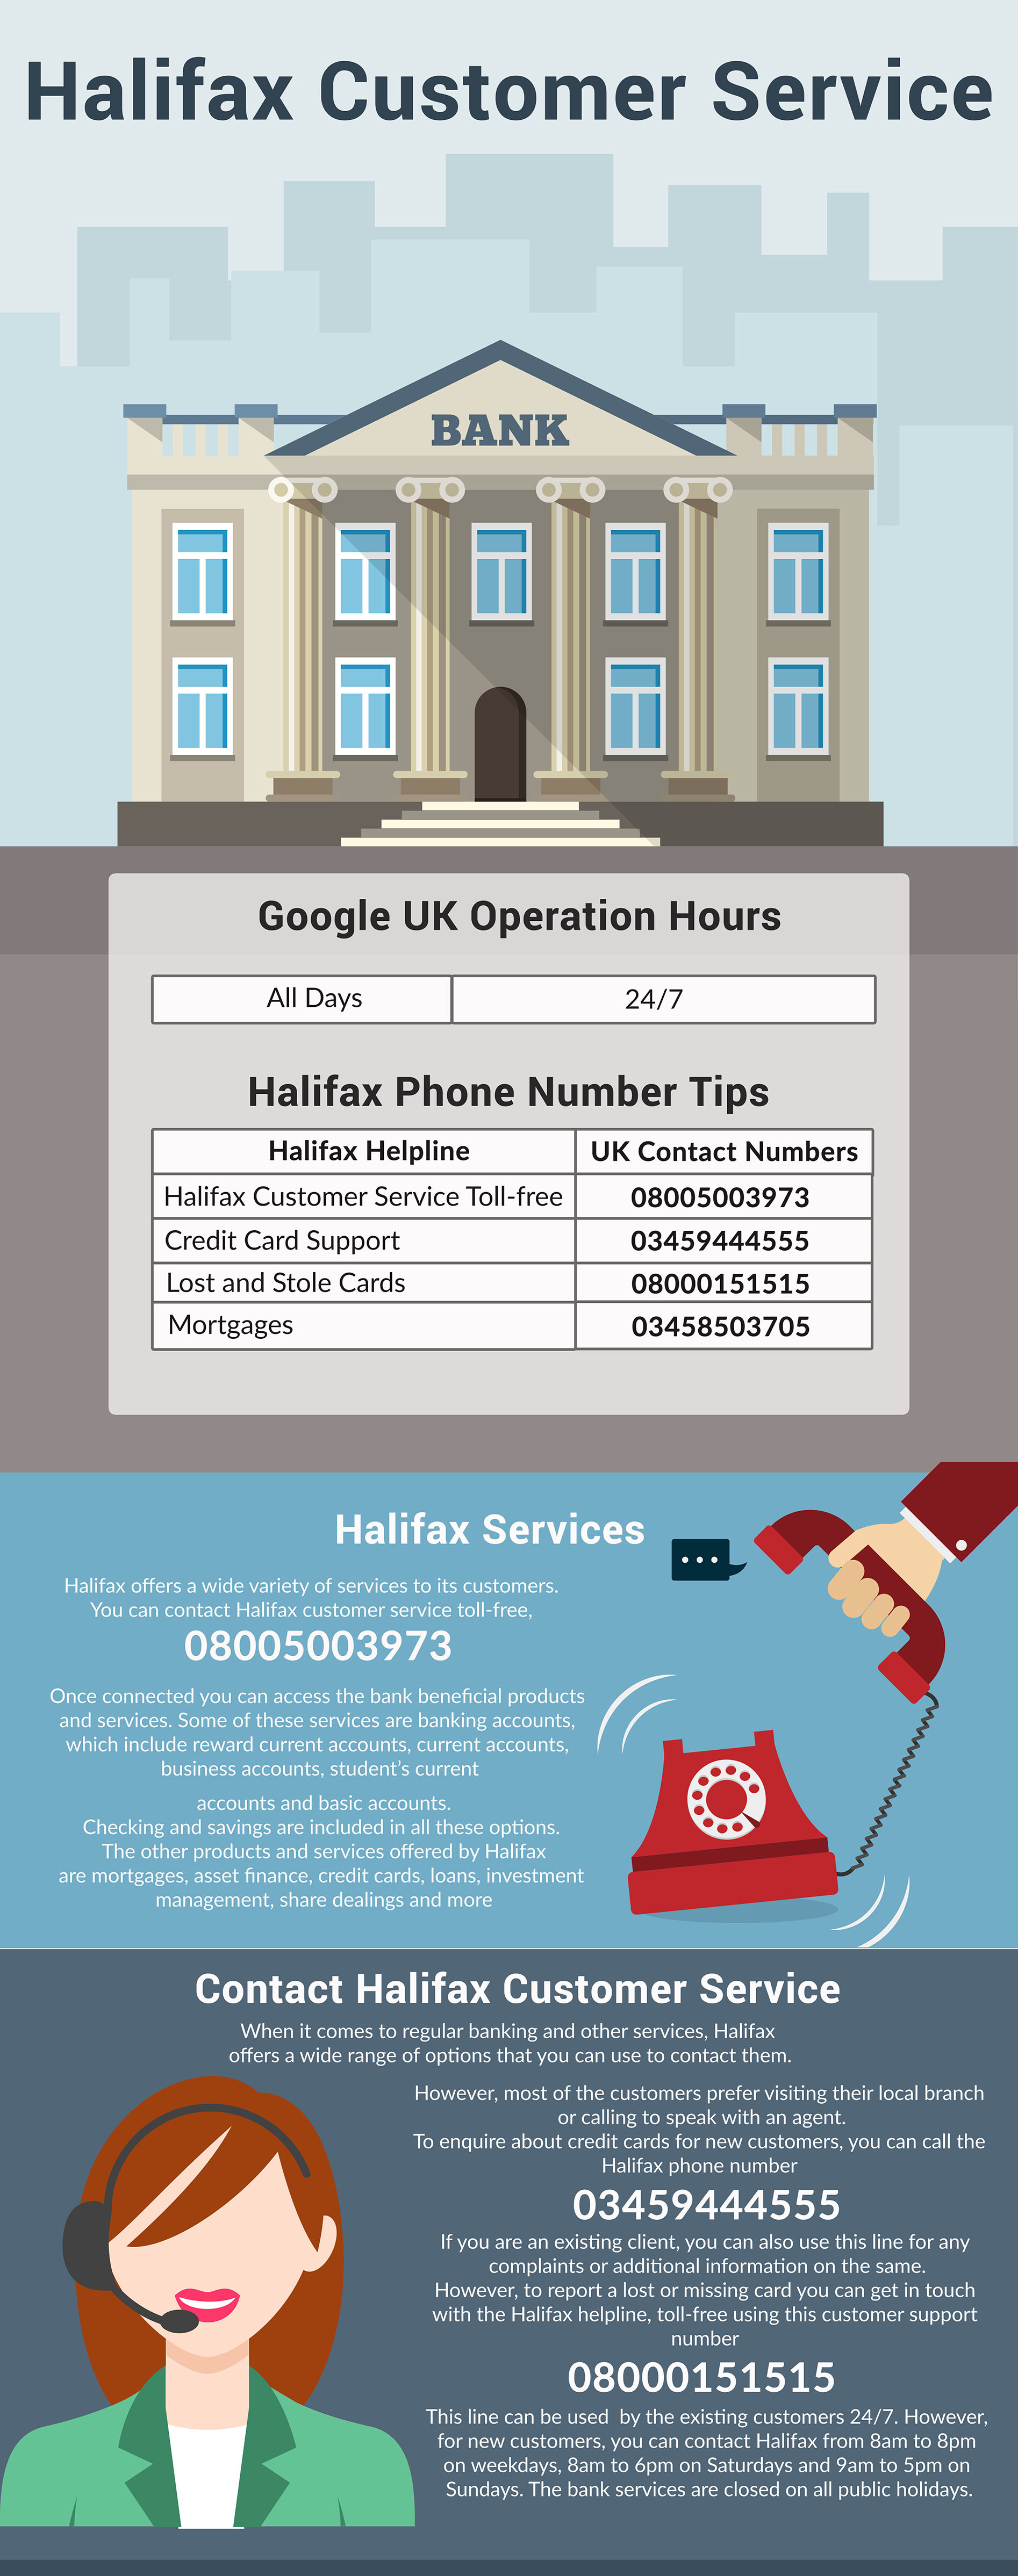 Halifax Customer Service Contact Number